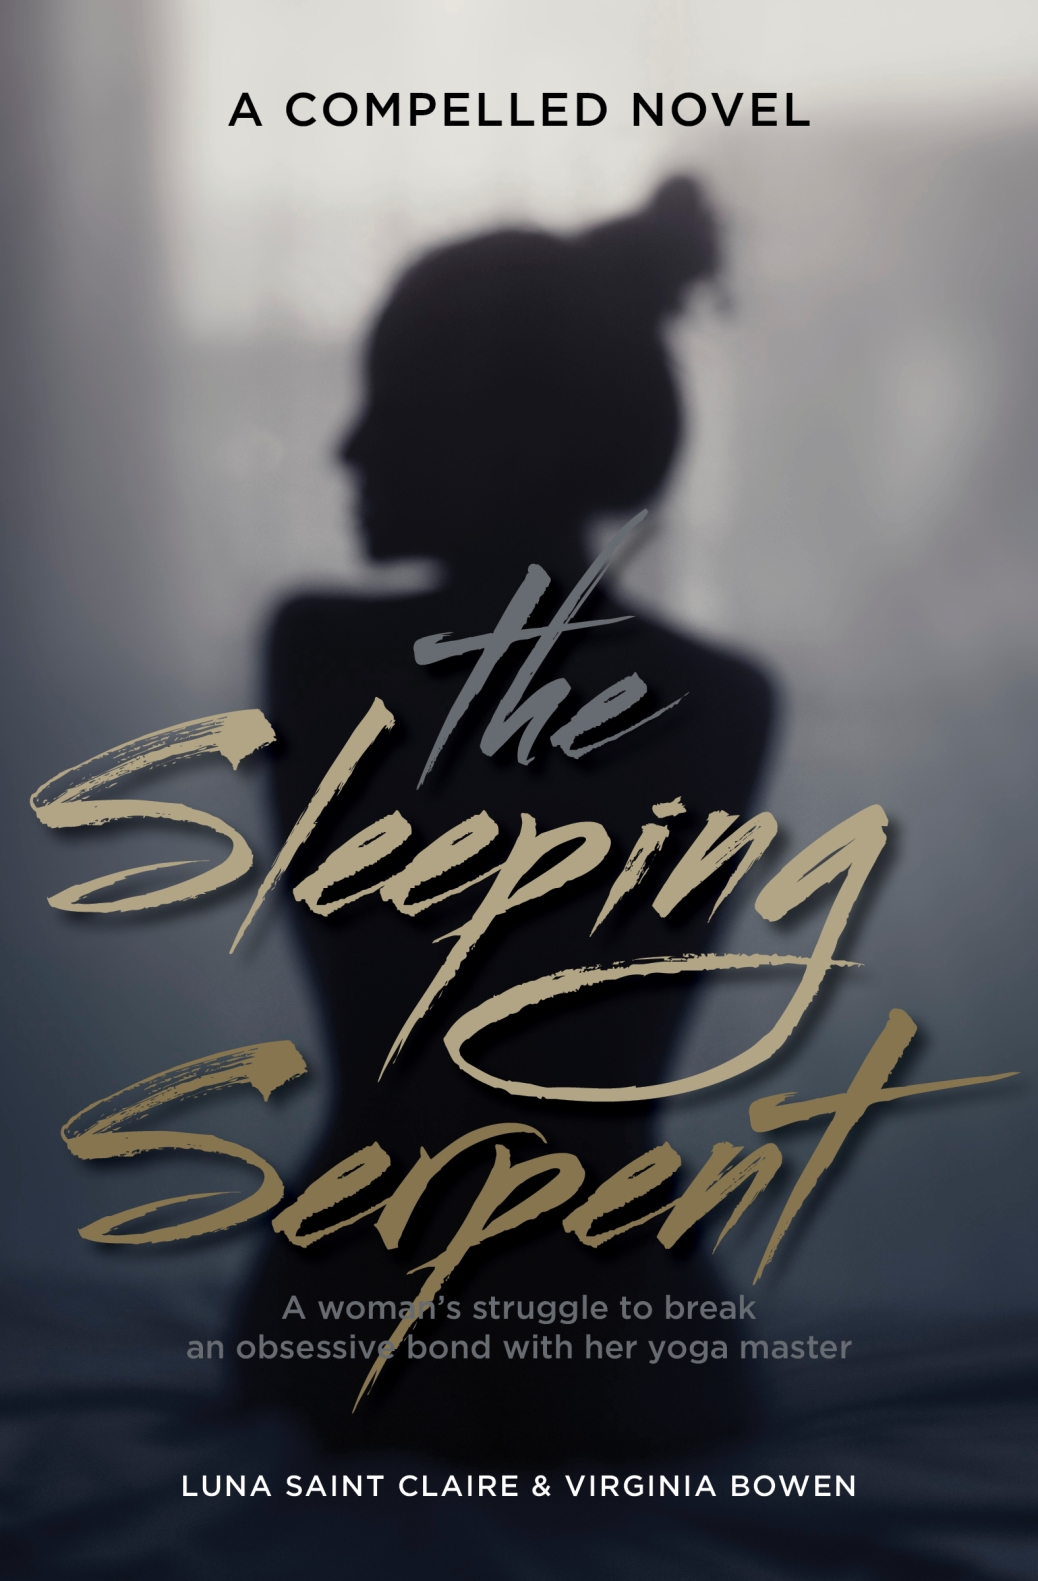 The Sleeping Serpent by Luna Saint Claire